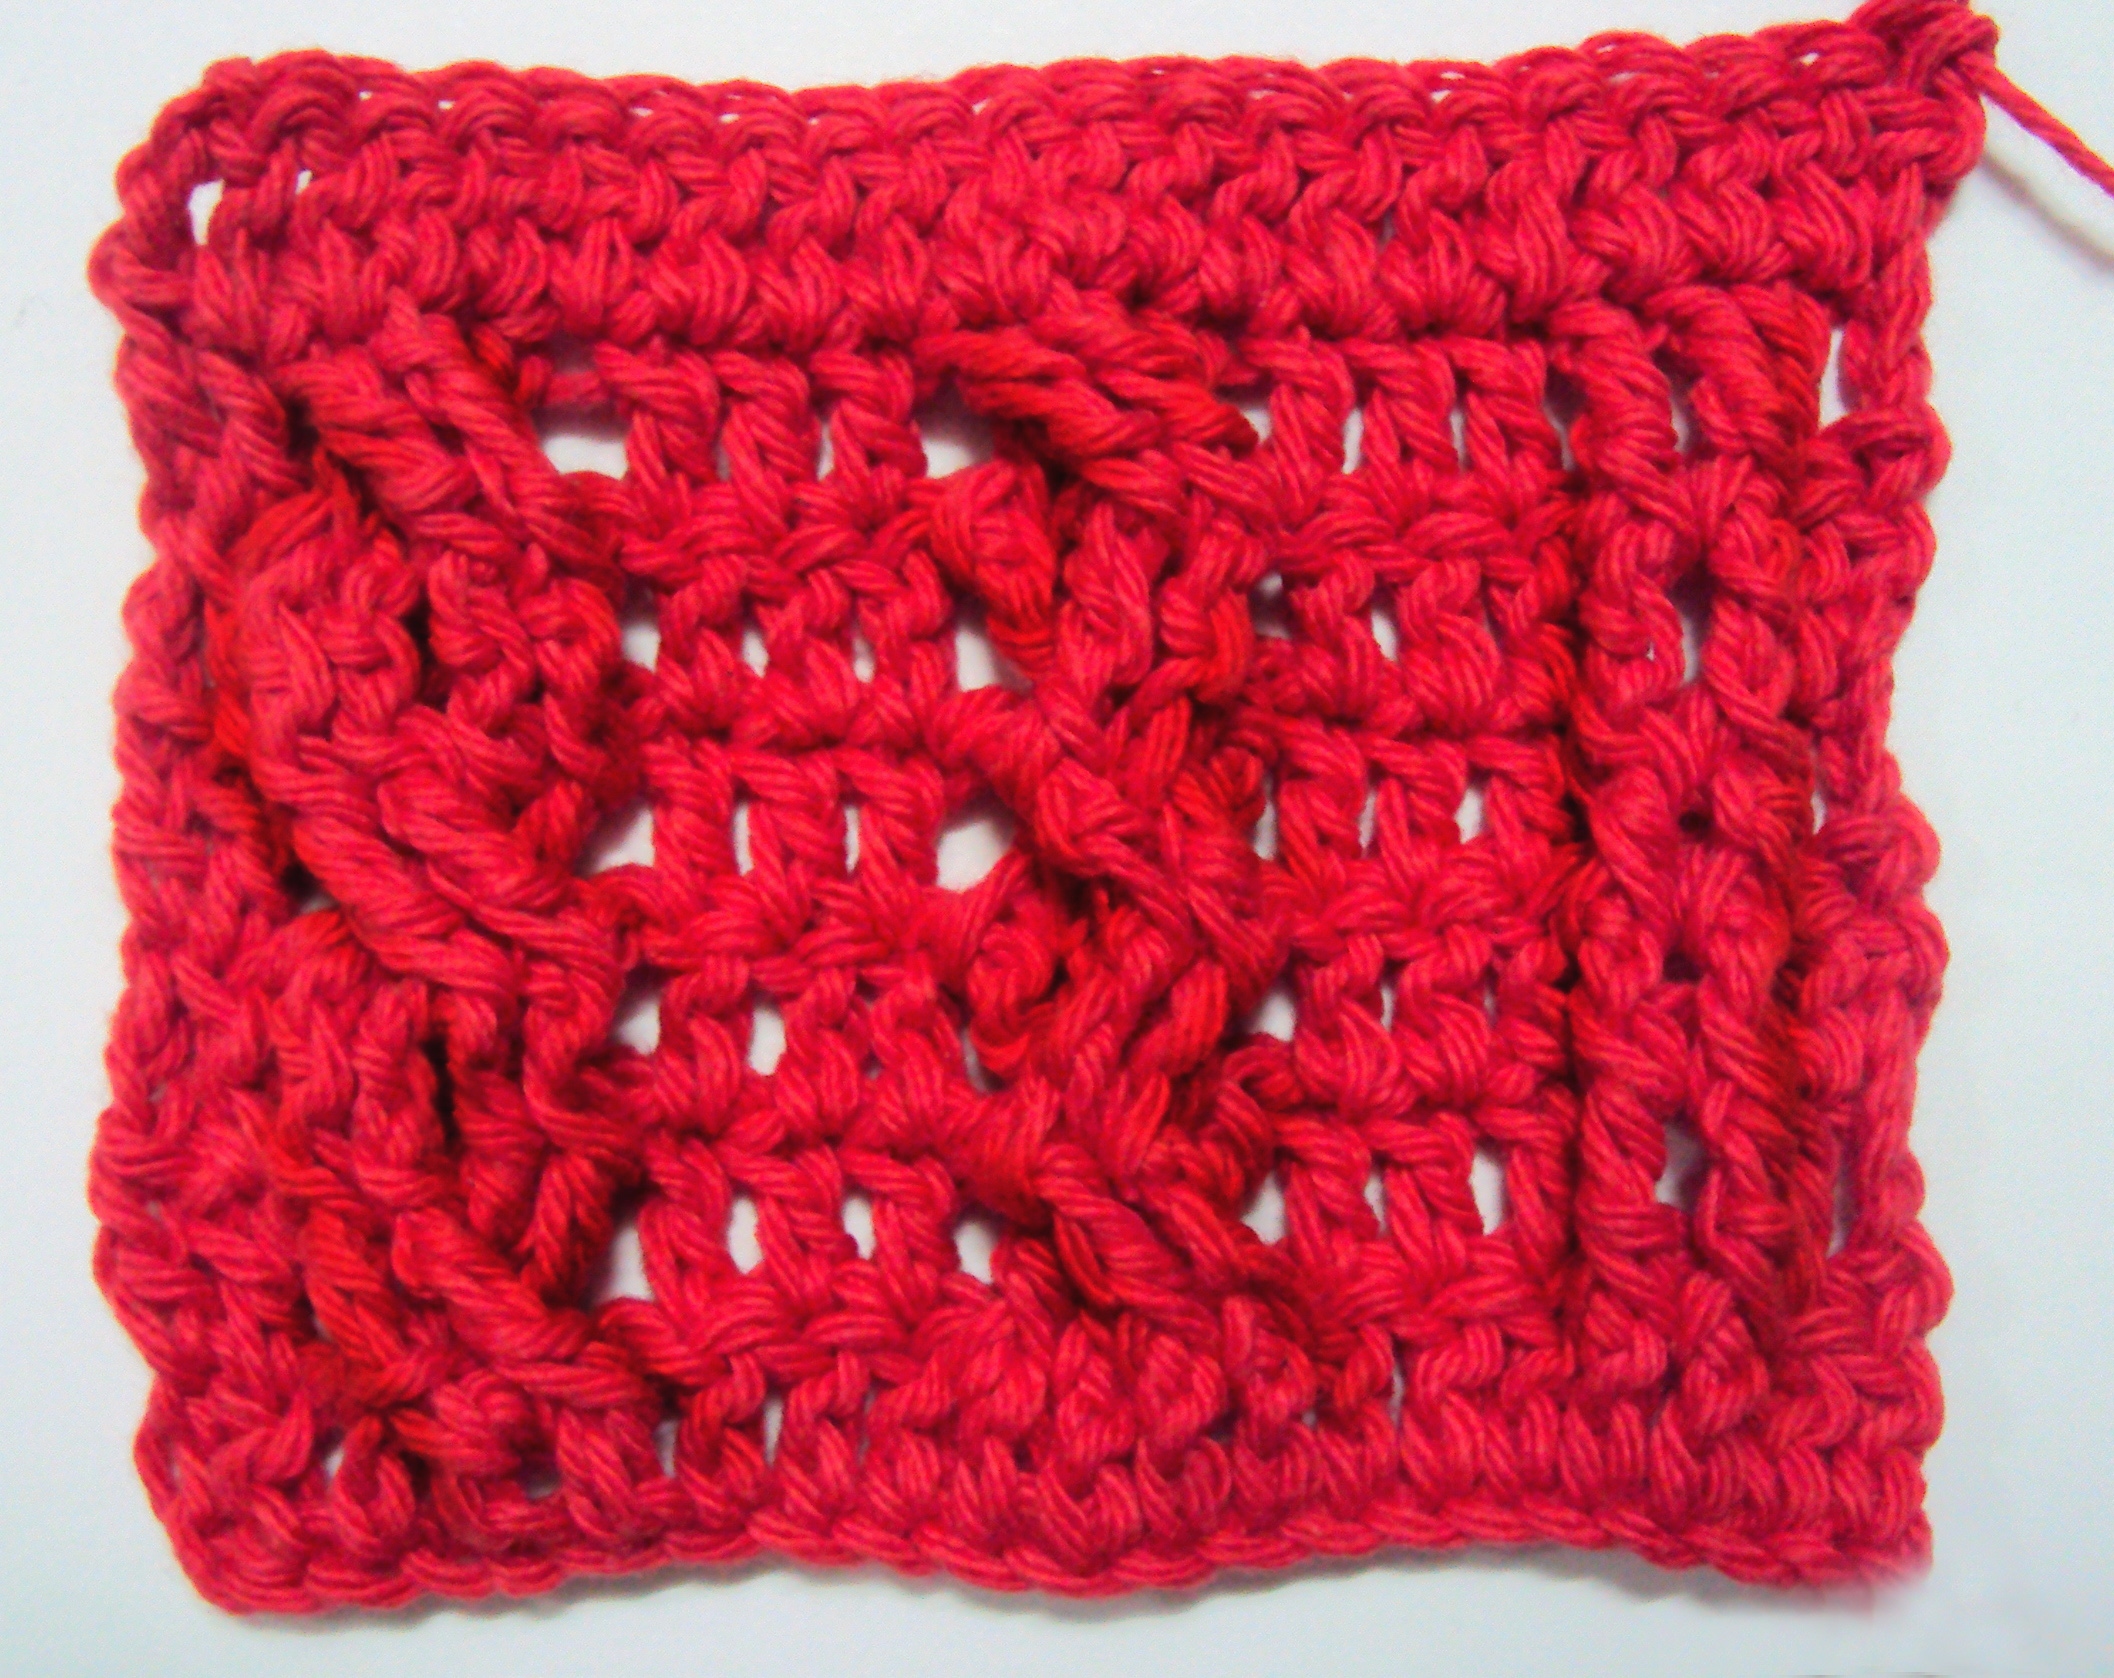 Crochet Patterns And Tutorials : ... How to Crochet: Cable Stitches - Crochet Patterns, Tutorials and News